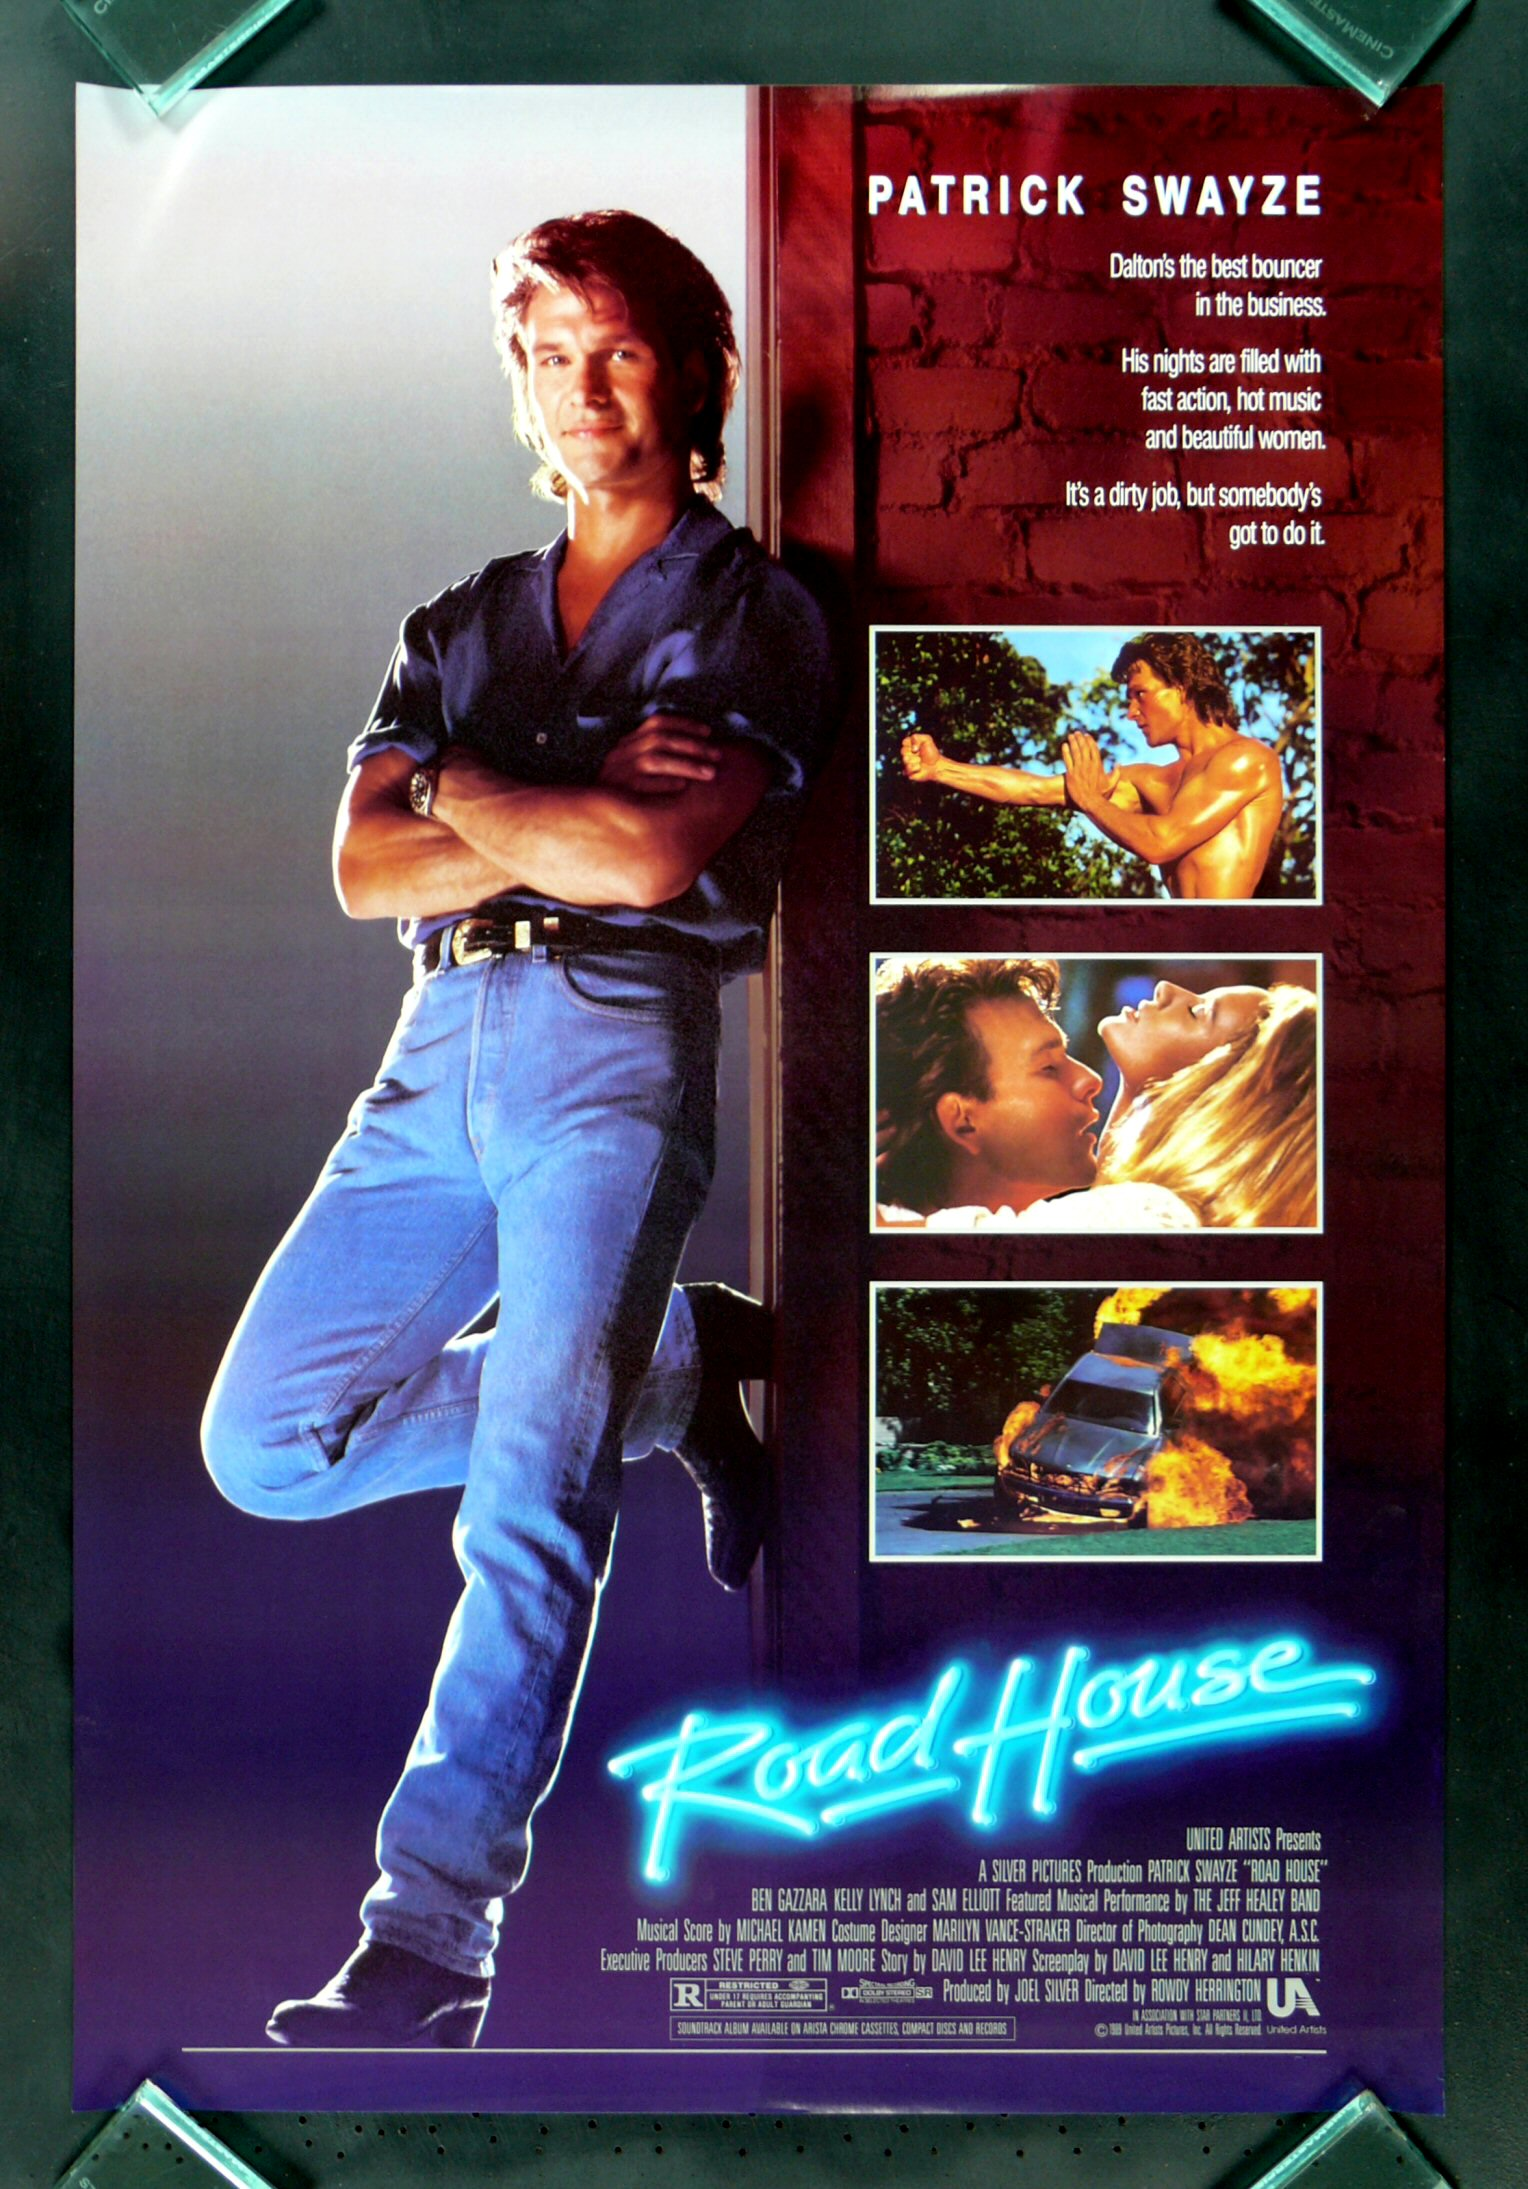 ... ORIGINAL MOVIE POSTER ROLLED UNUSED ROADHOUSE PATRICK SWAYZE | eBay